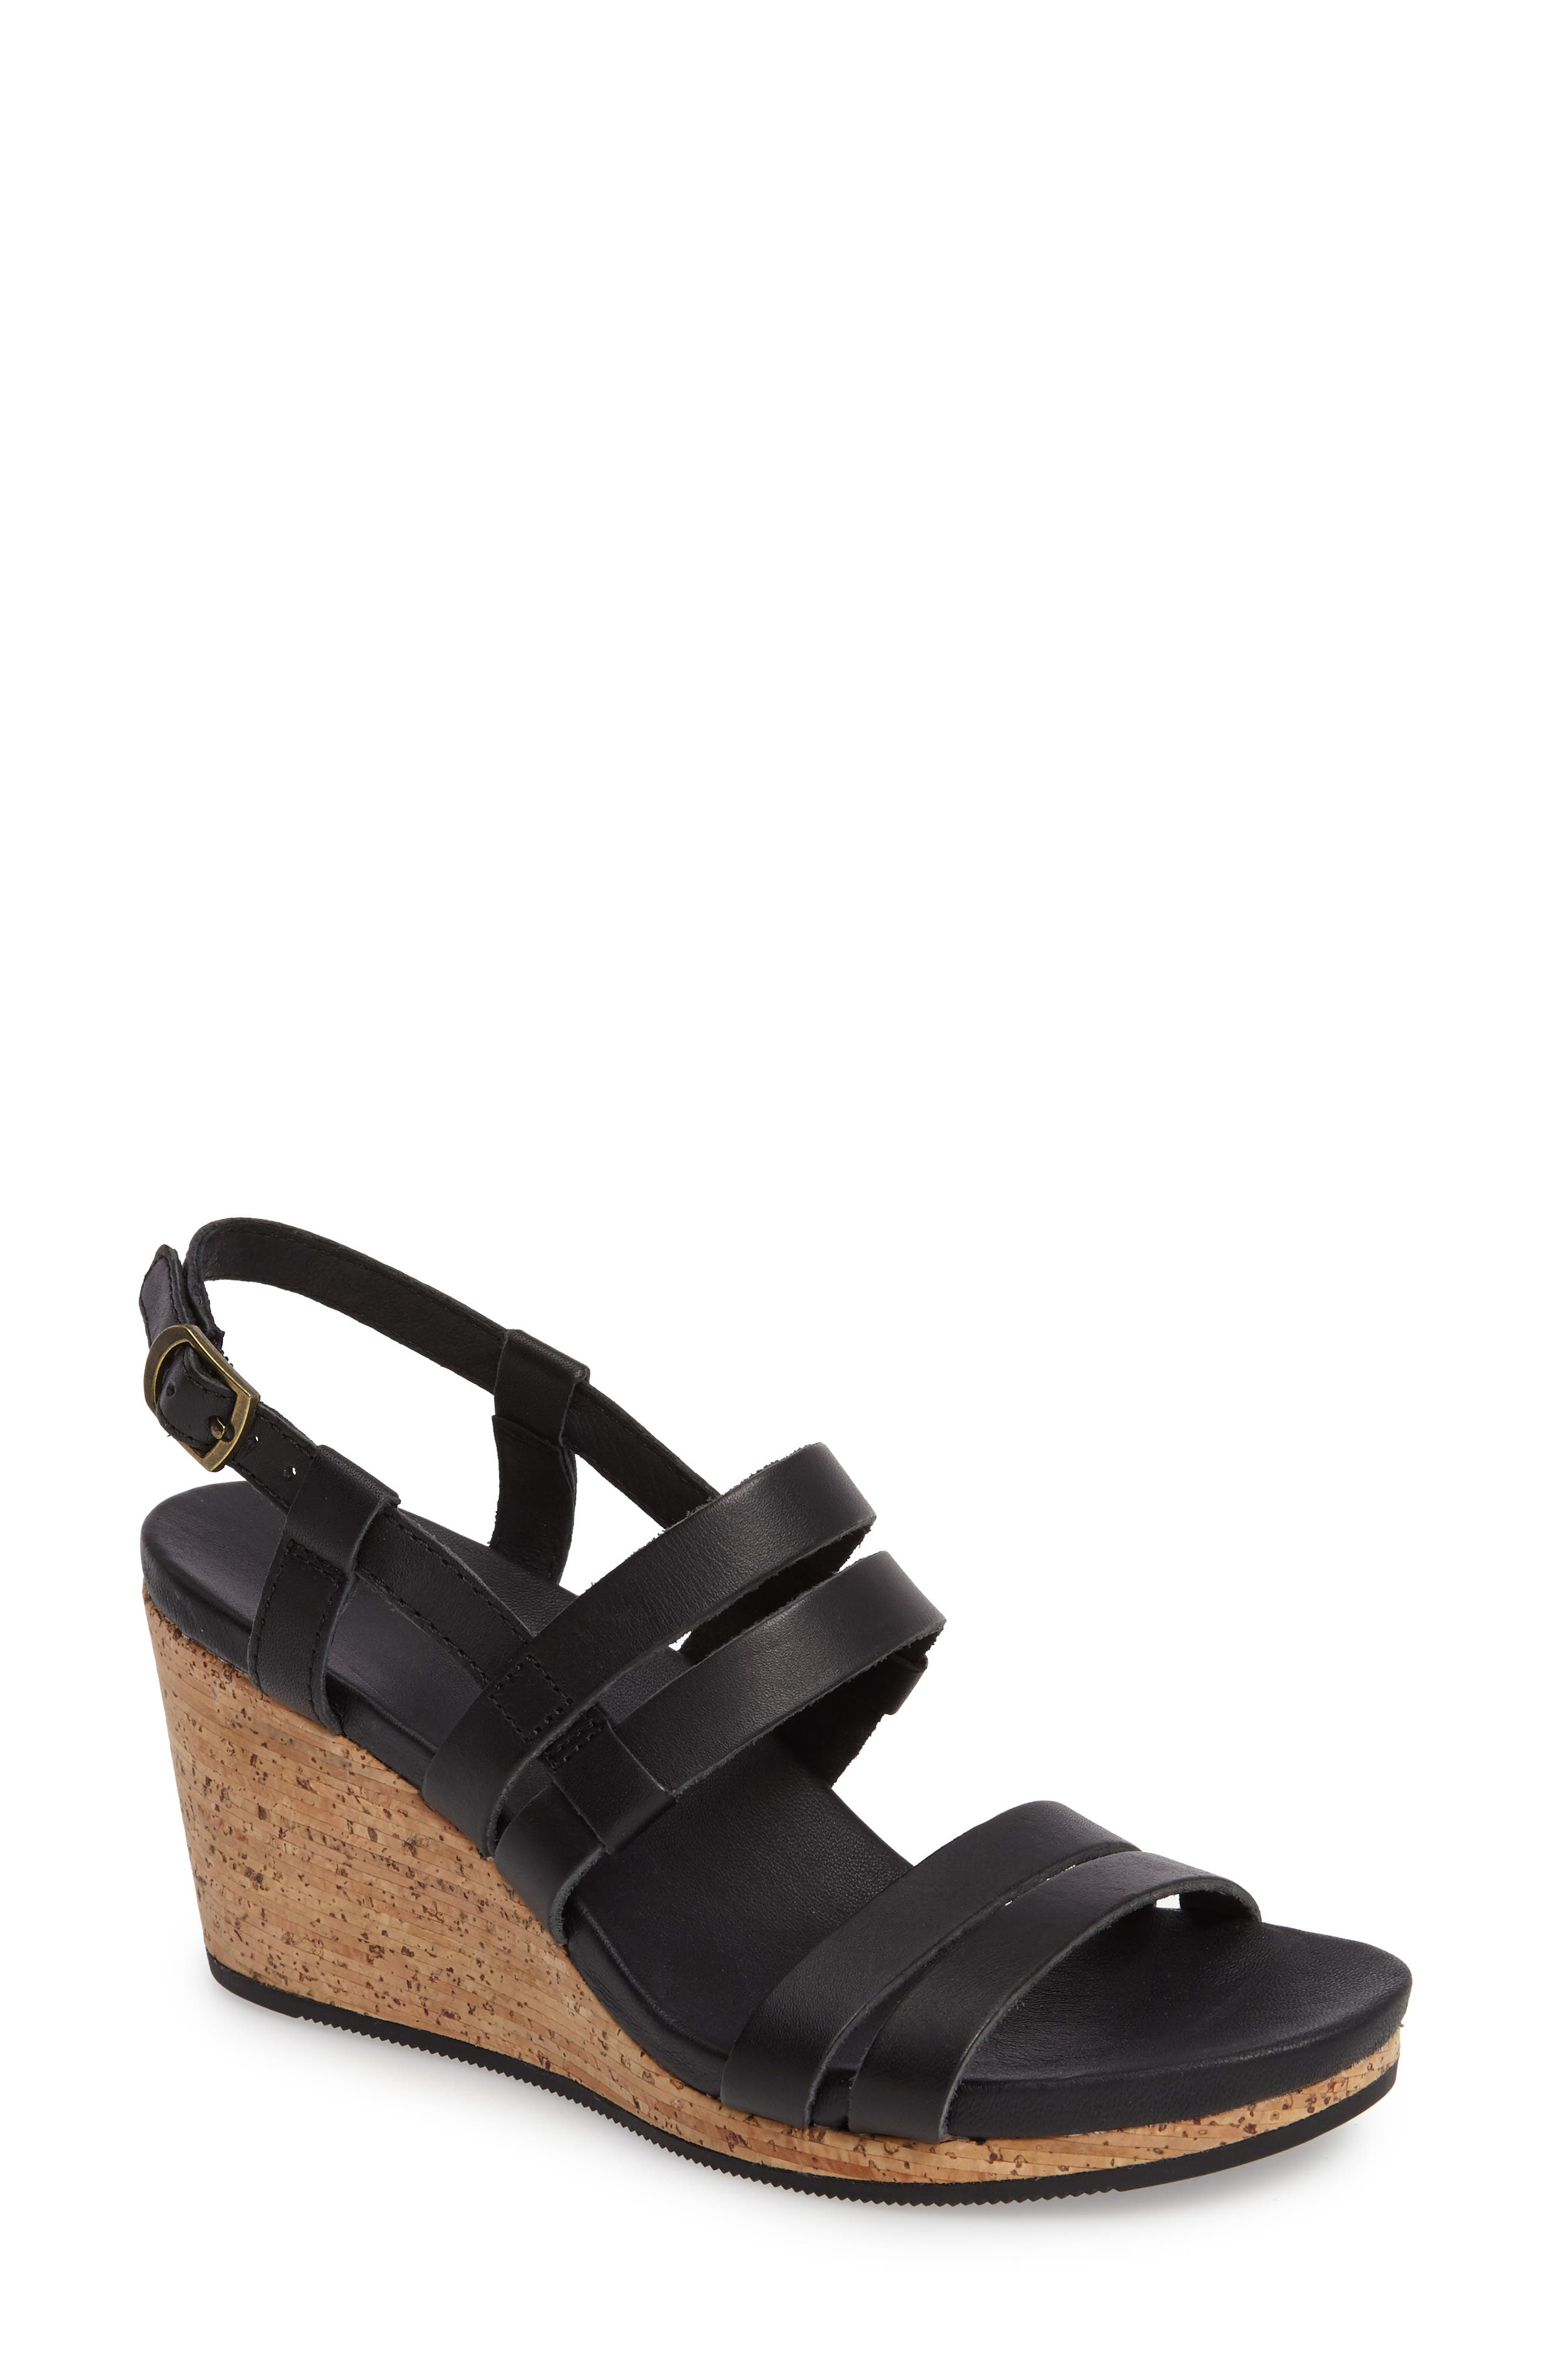 Teva Arrabelle Strappy Wedge Sandal (Women)